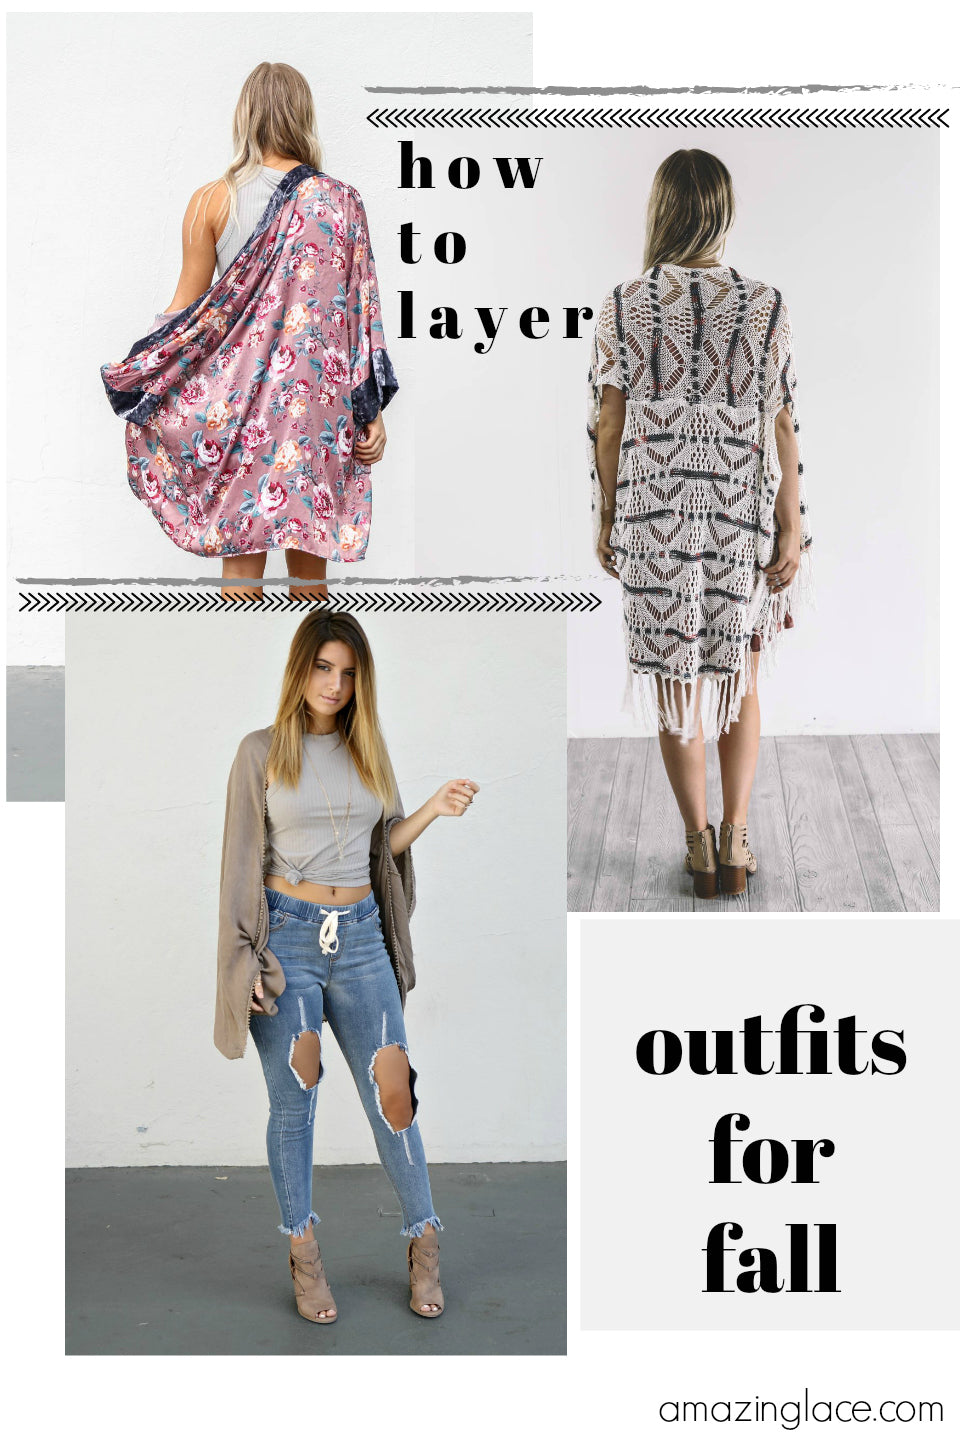 How To Layer Your Outfits For Fall